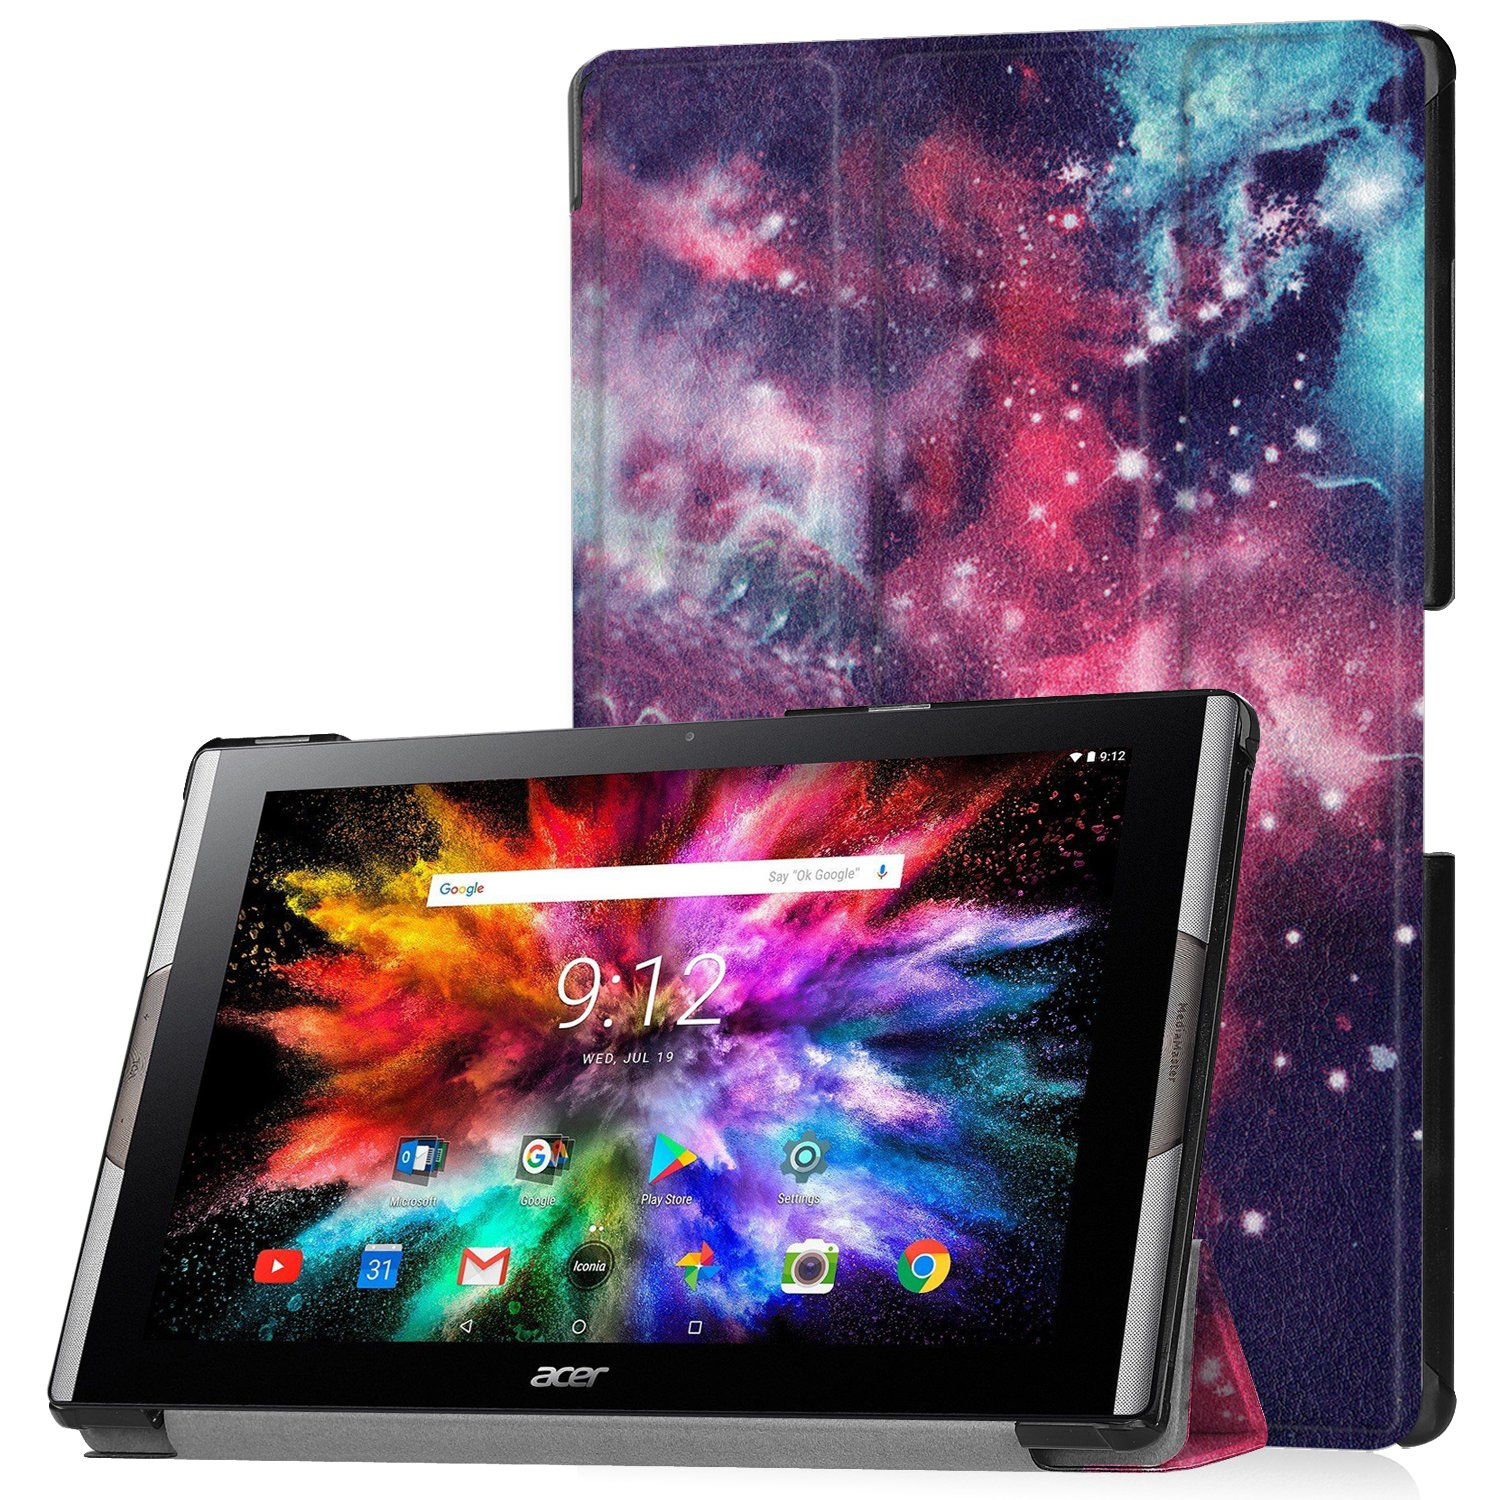 ACER ICONIA SMART DRIVERS FOR WINDOWS DOWNLOAD